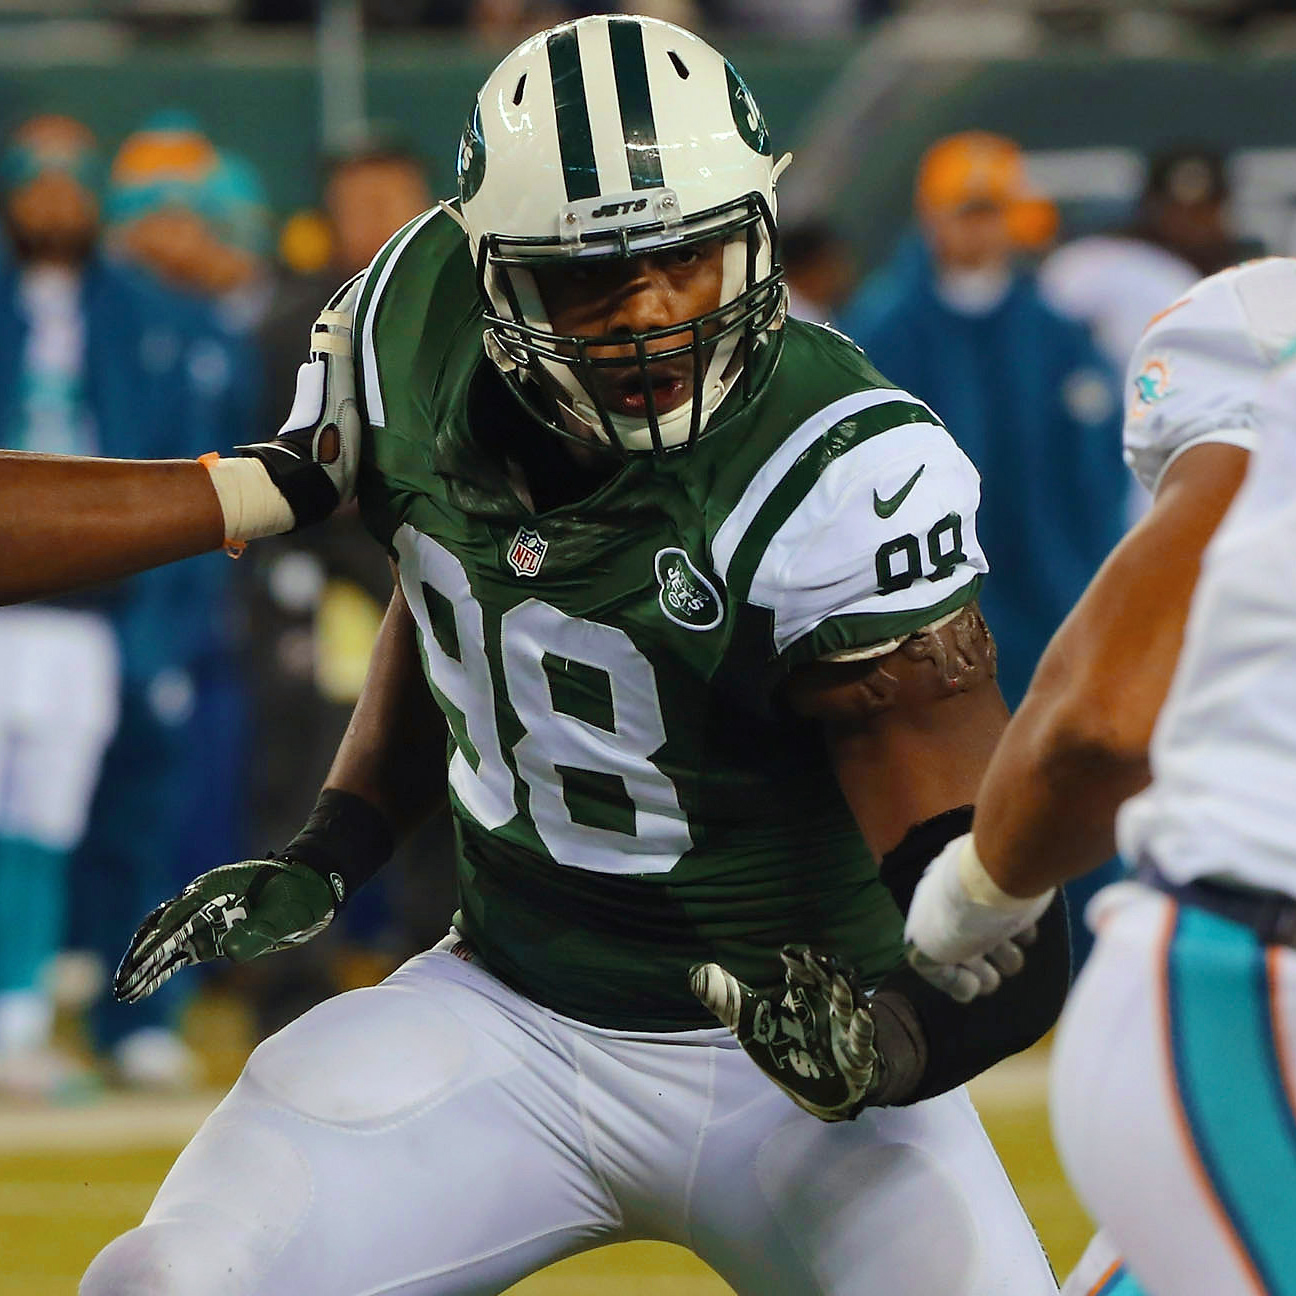 New Dolphins DE Quinton Coples on playing Jets: 'It brings…